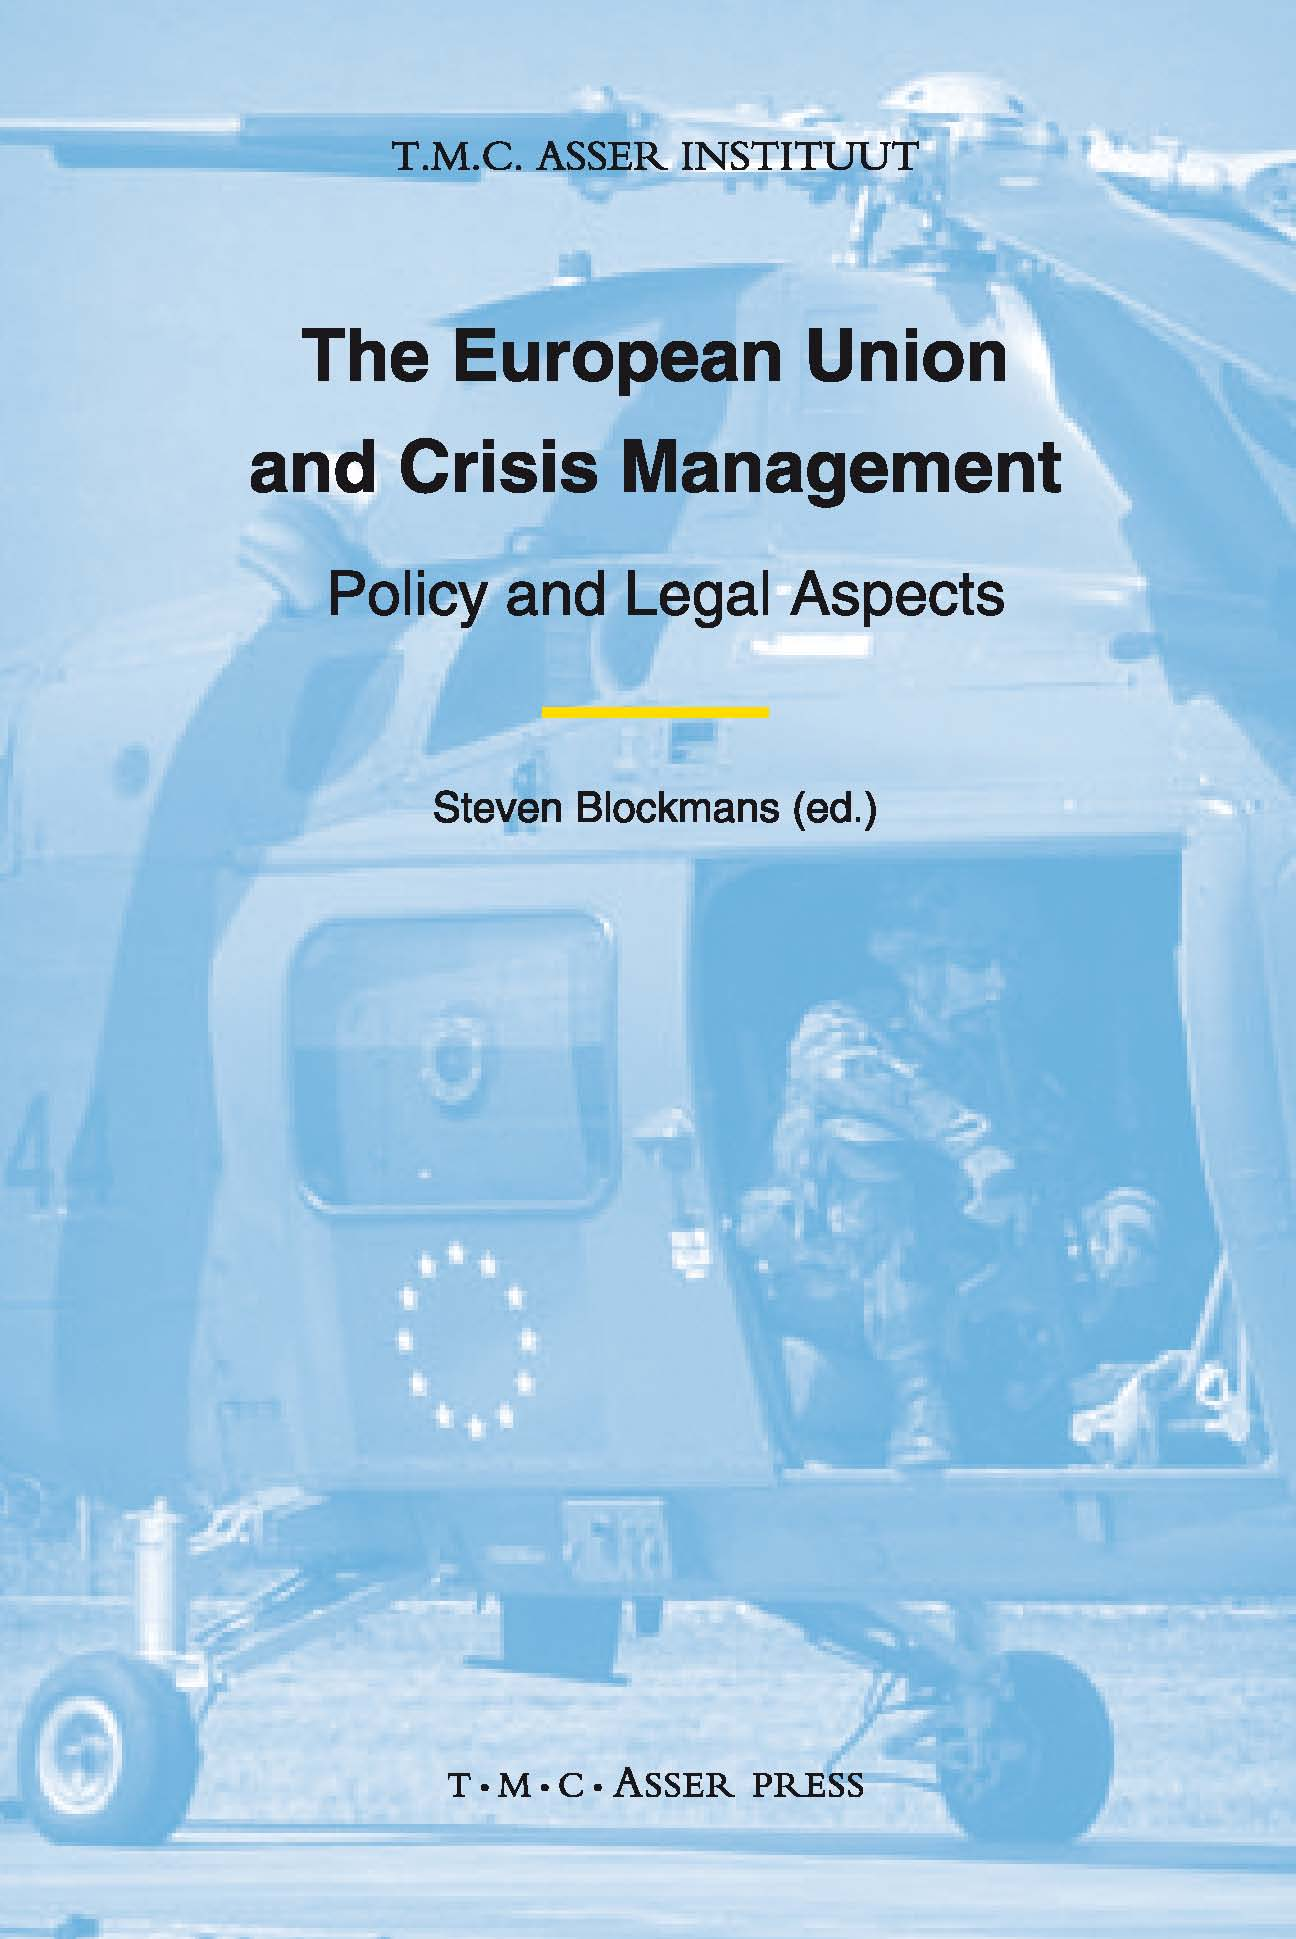 The European Union and Crisis Management - Policy and Legal Aspects